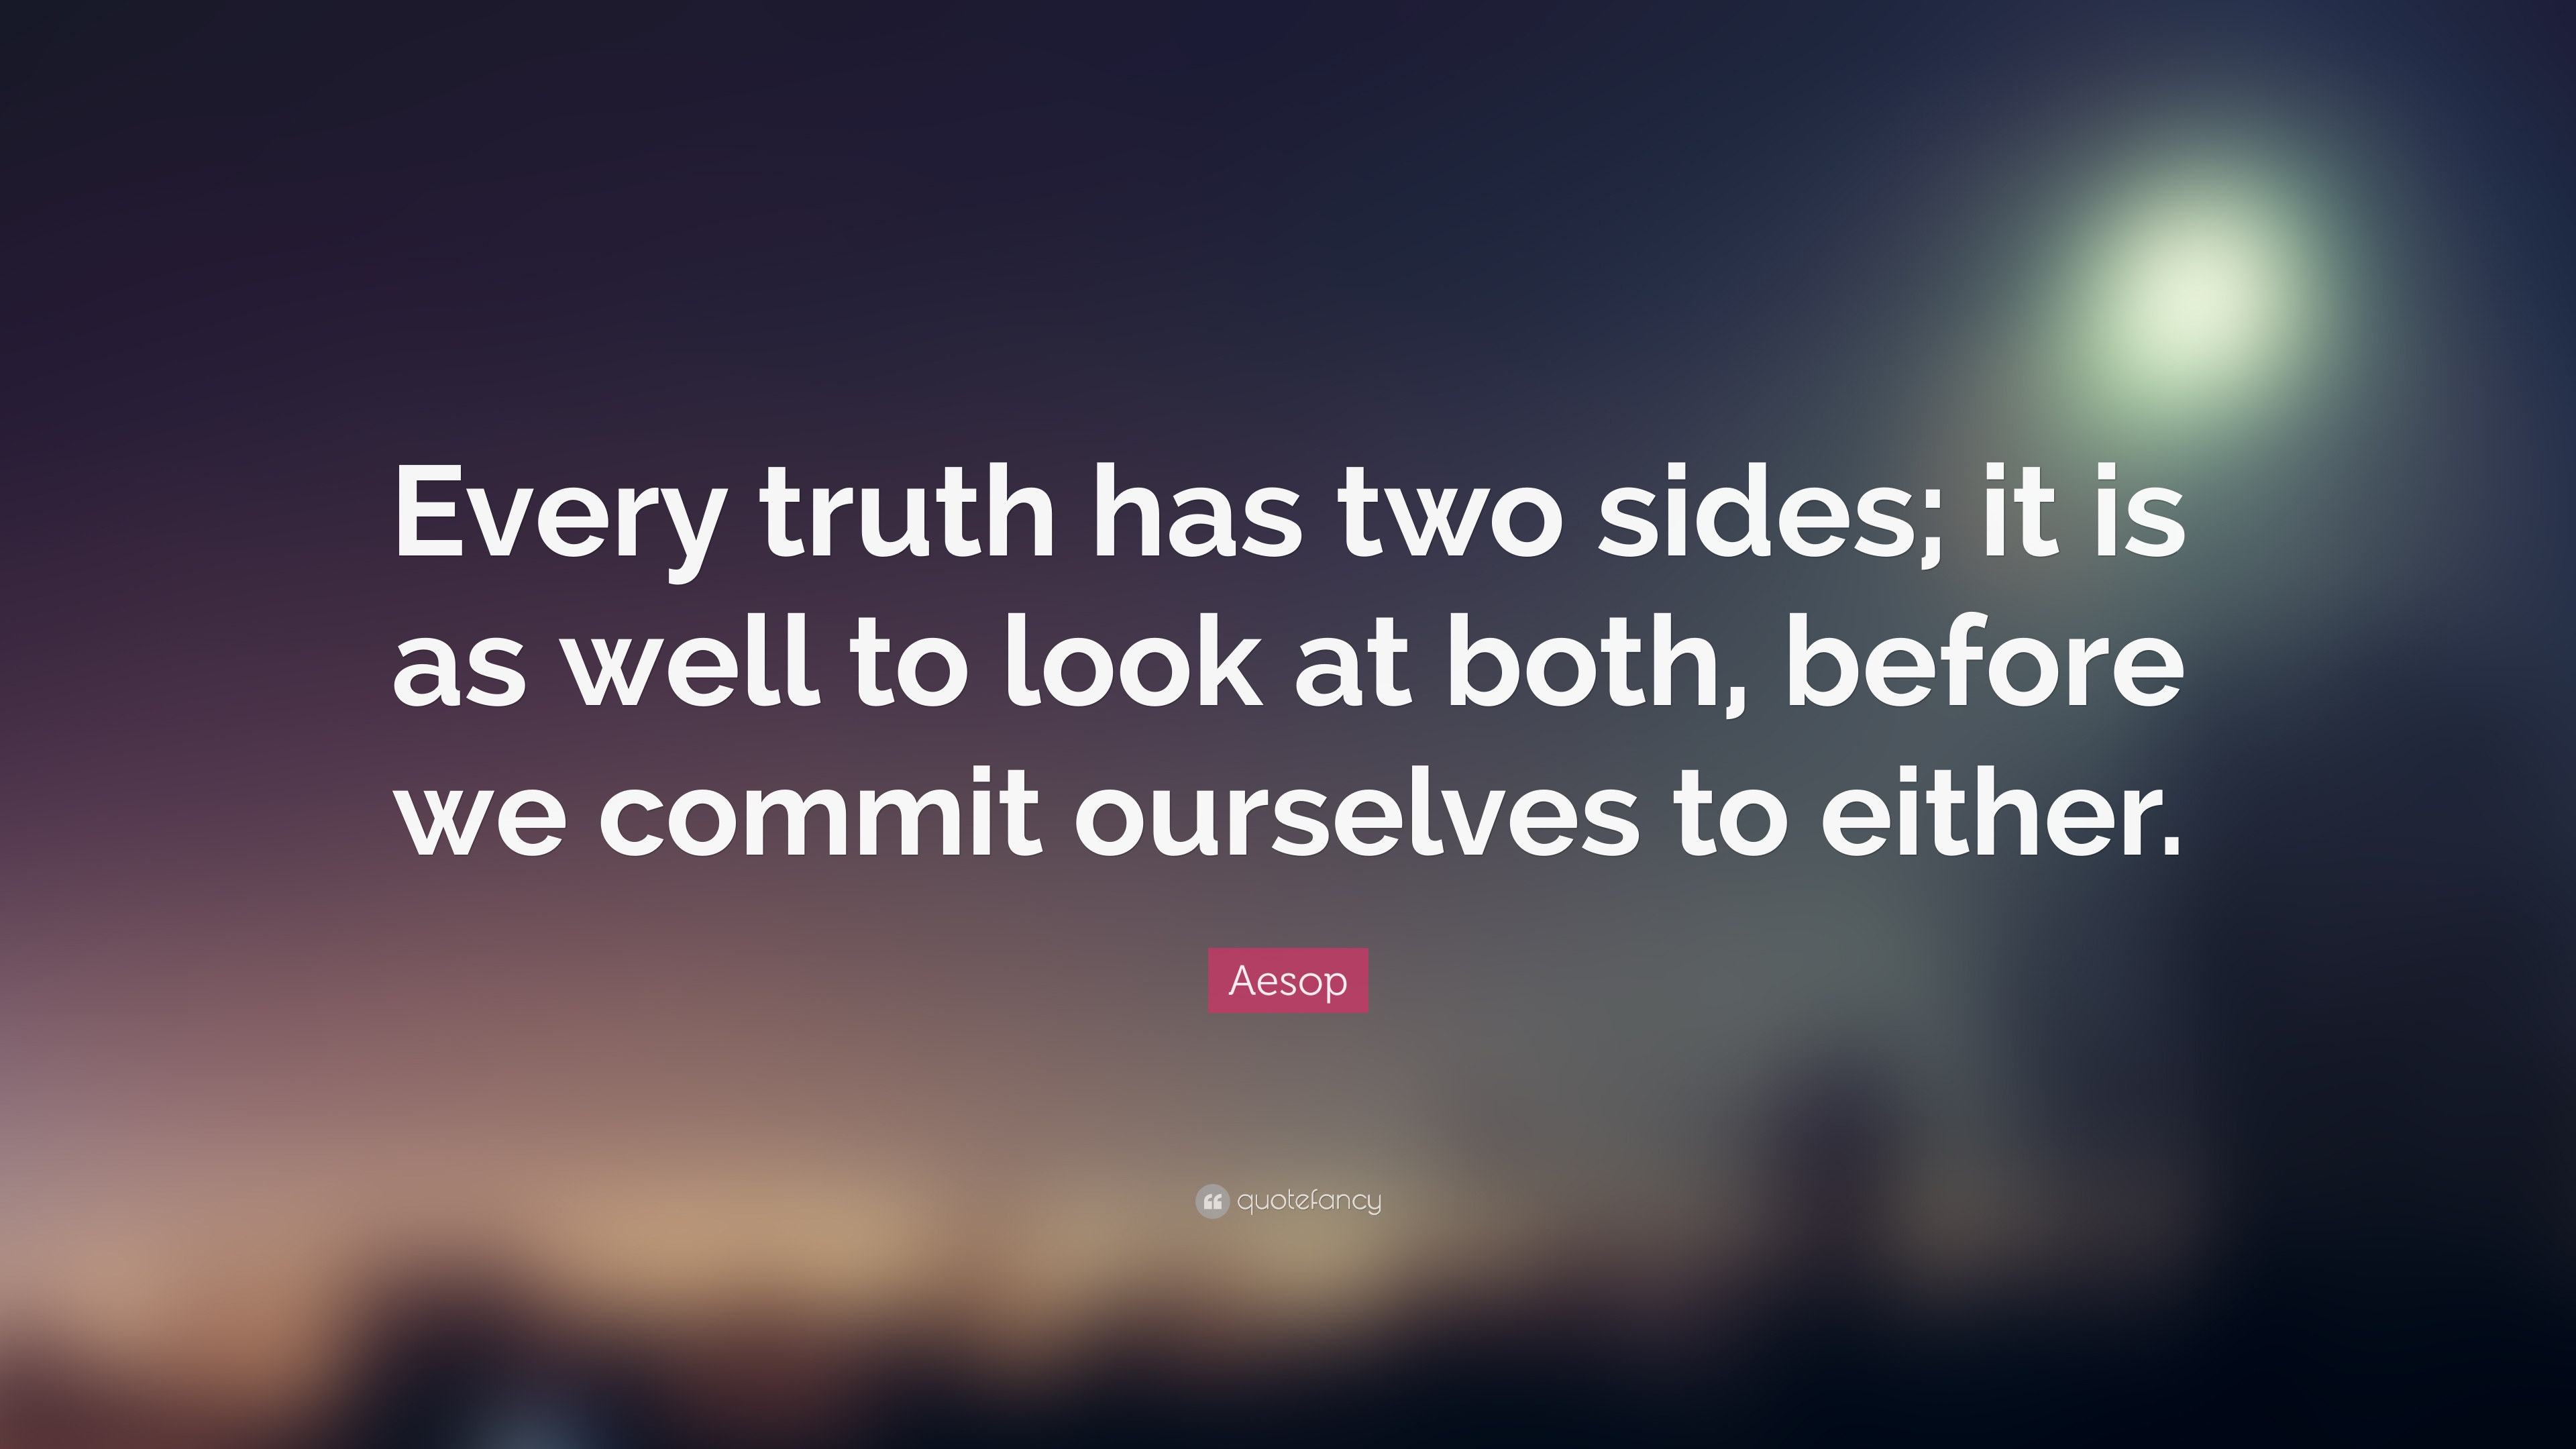 Aesop Quote: Every truth has two sides; it is as well to look at both, before we commit